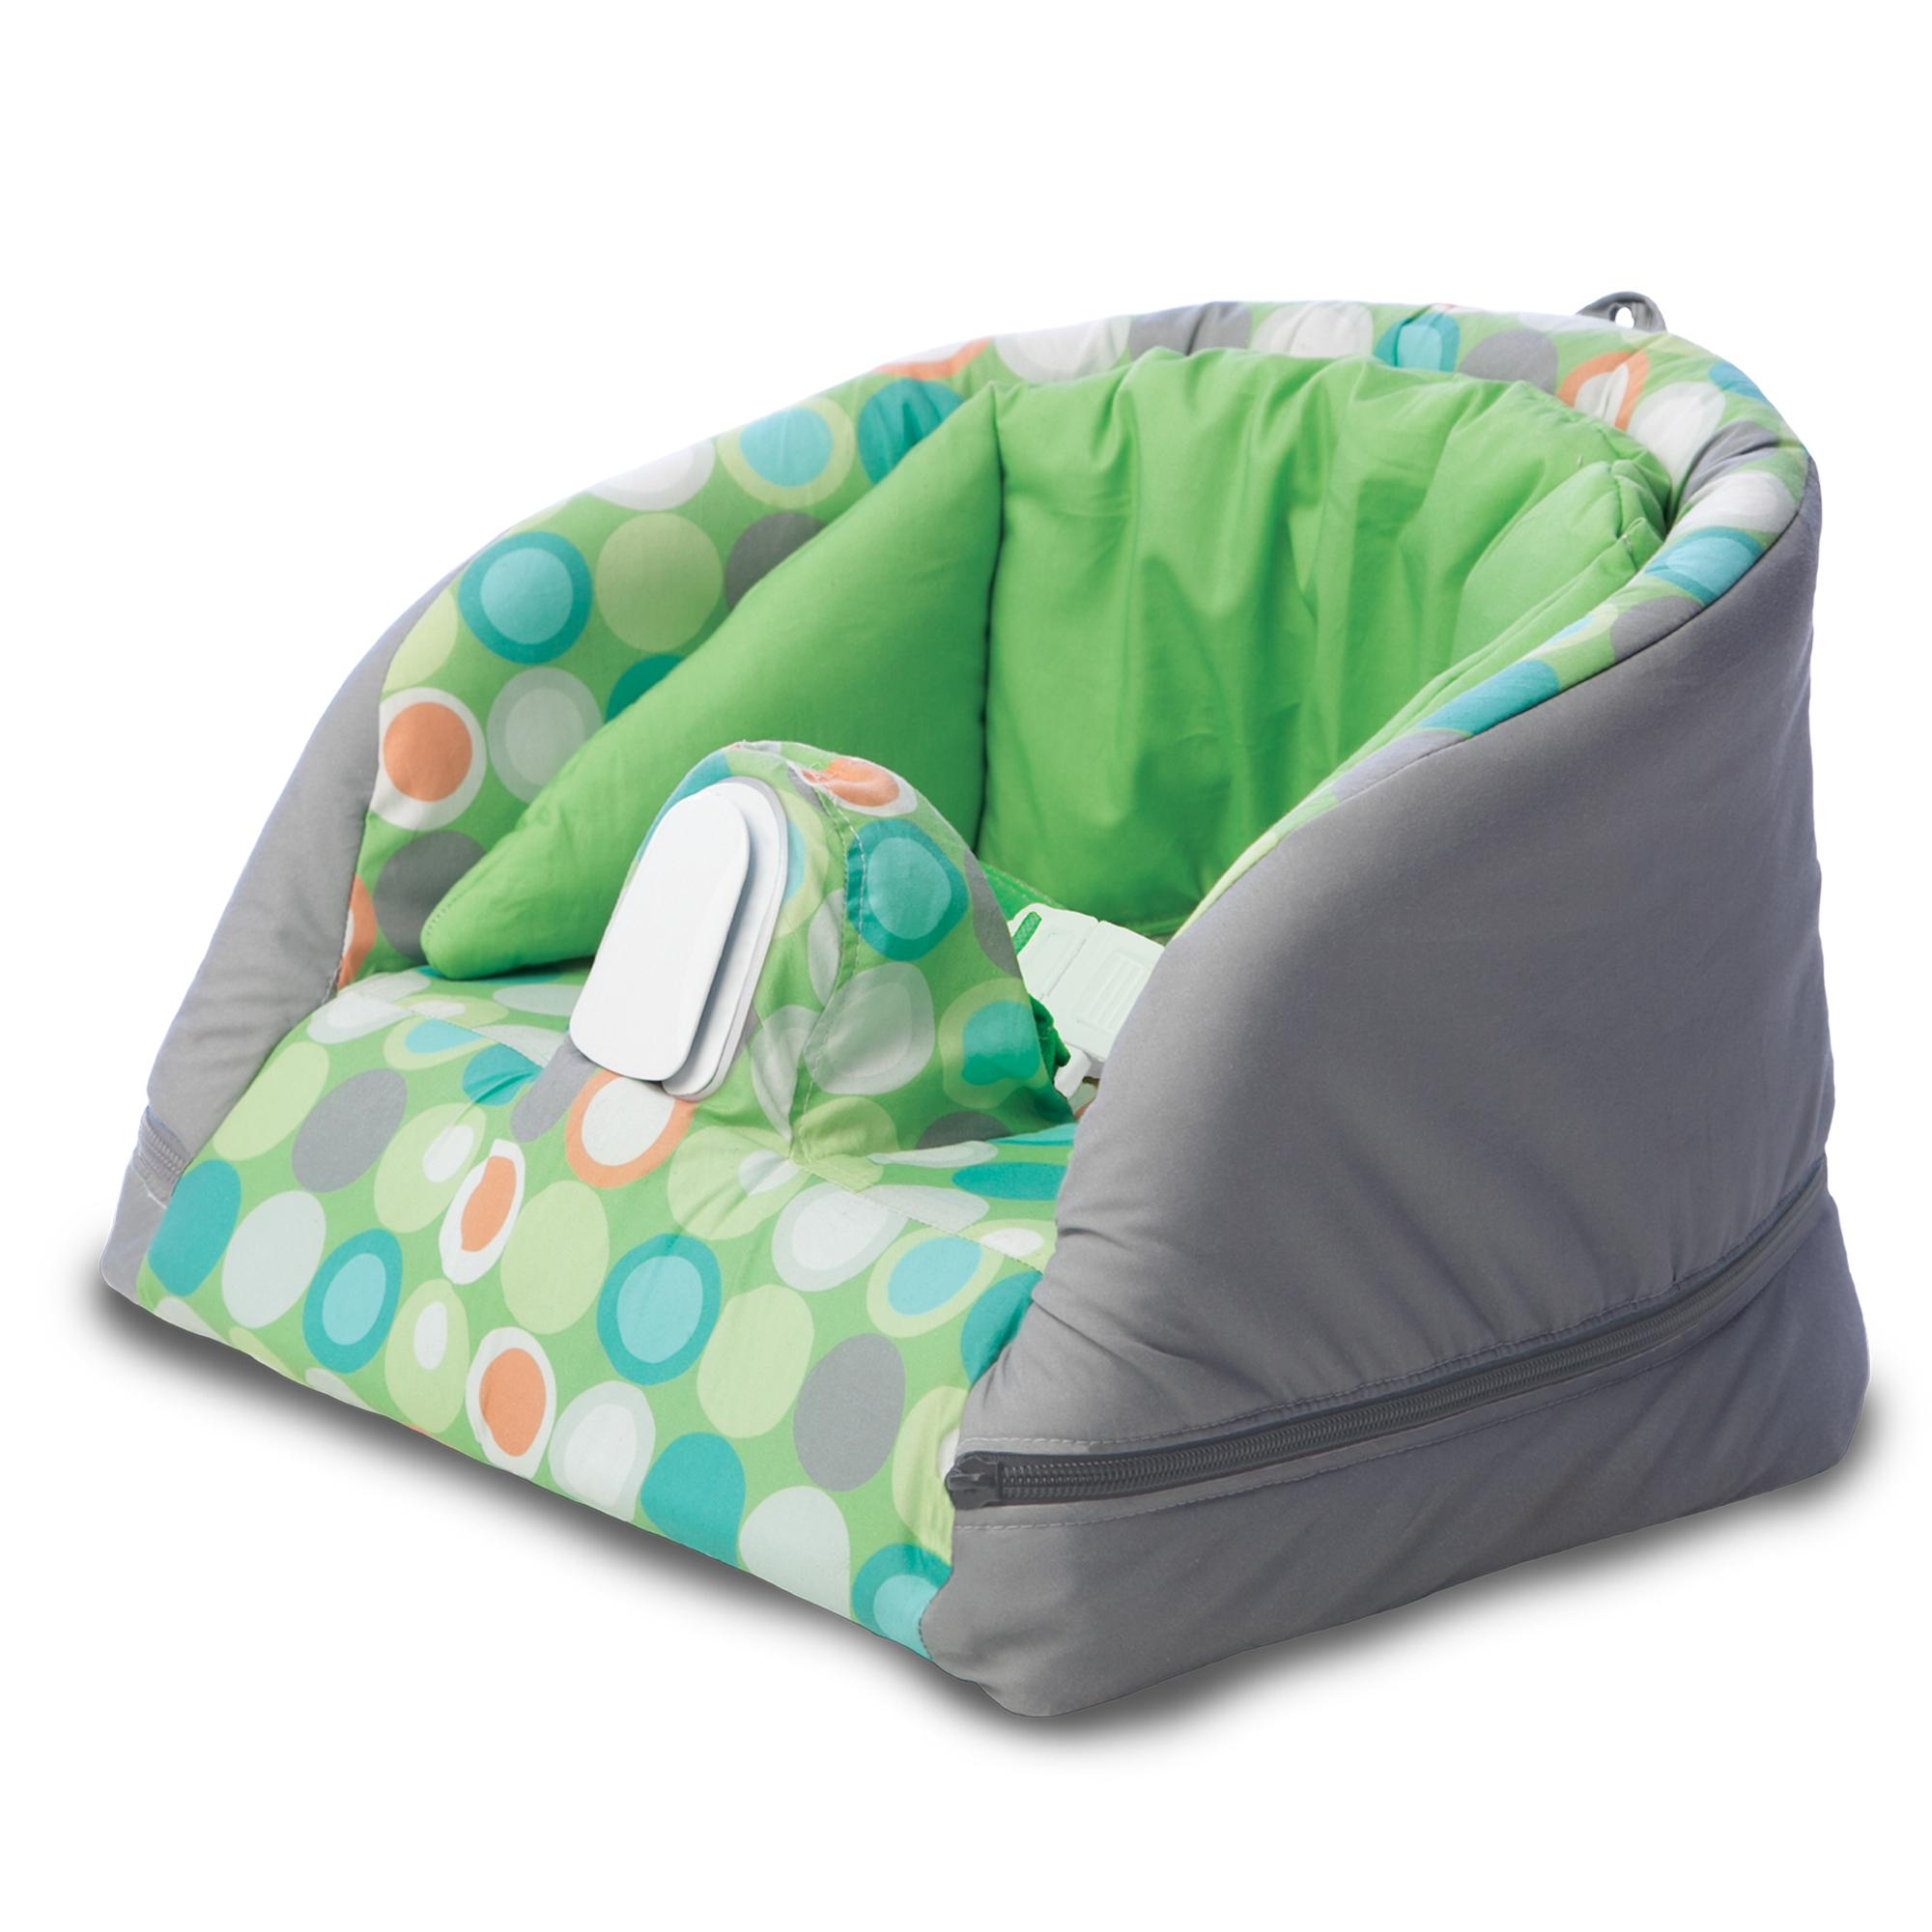 boppy baby chair unique comfy chairs amazon marbles